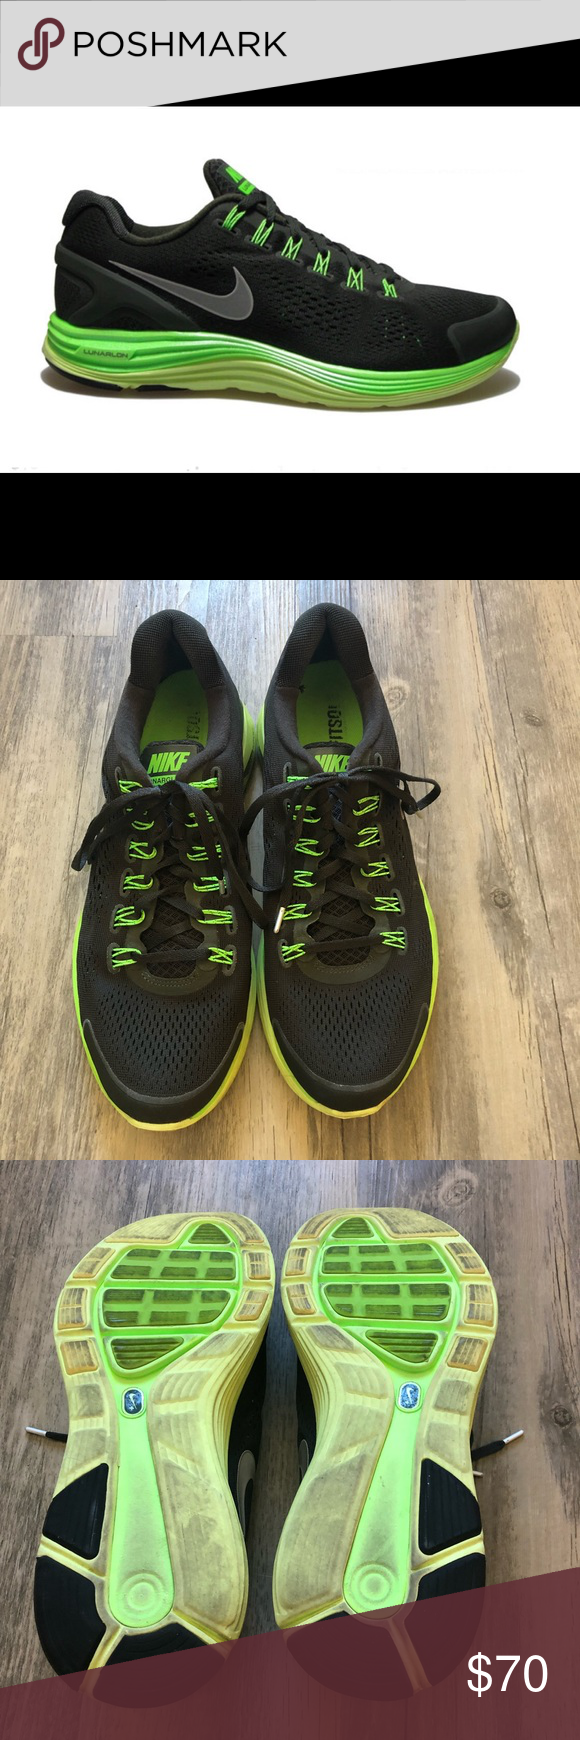 a67c8eb017e2 Nike LunarGlide4 Men s Running Shoes Nike LunarGlide4 Men s Running Shoes  Size 12 Color  Black   Neon Green Nike+ enabled Amazing fit and support on  an ...